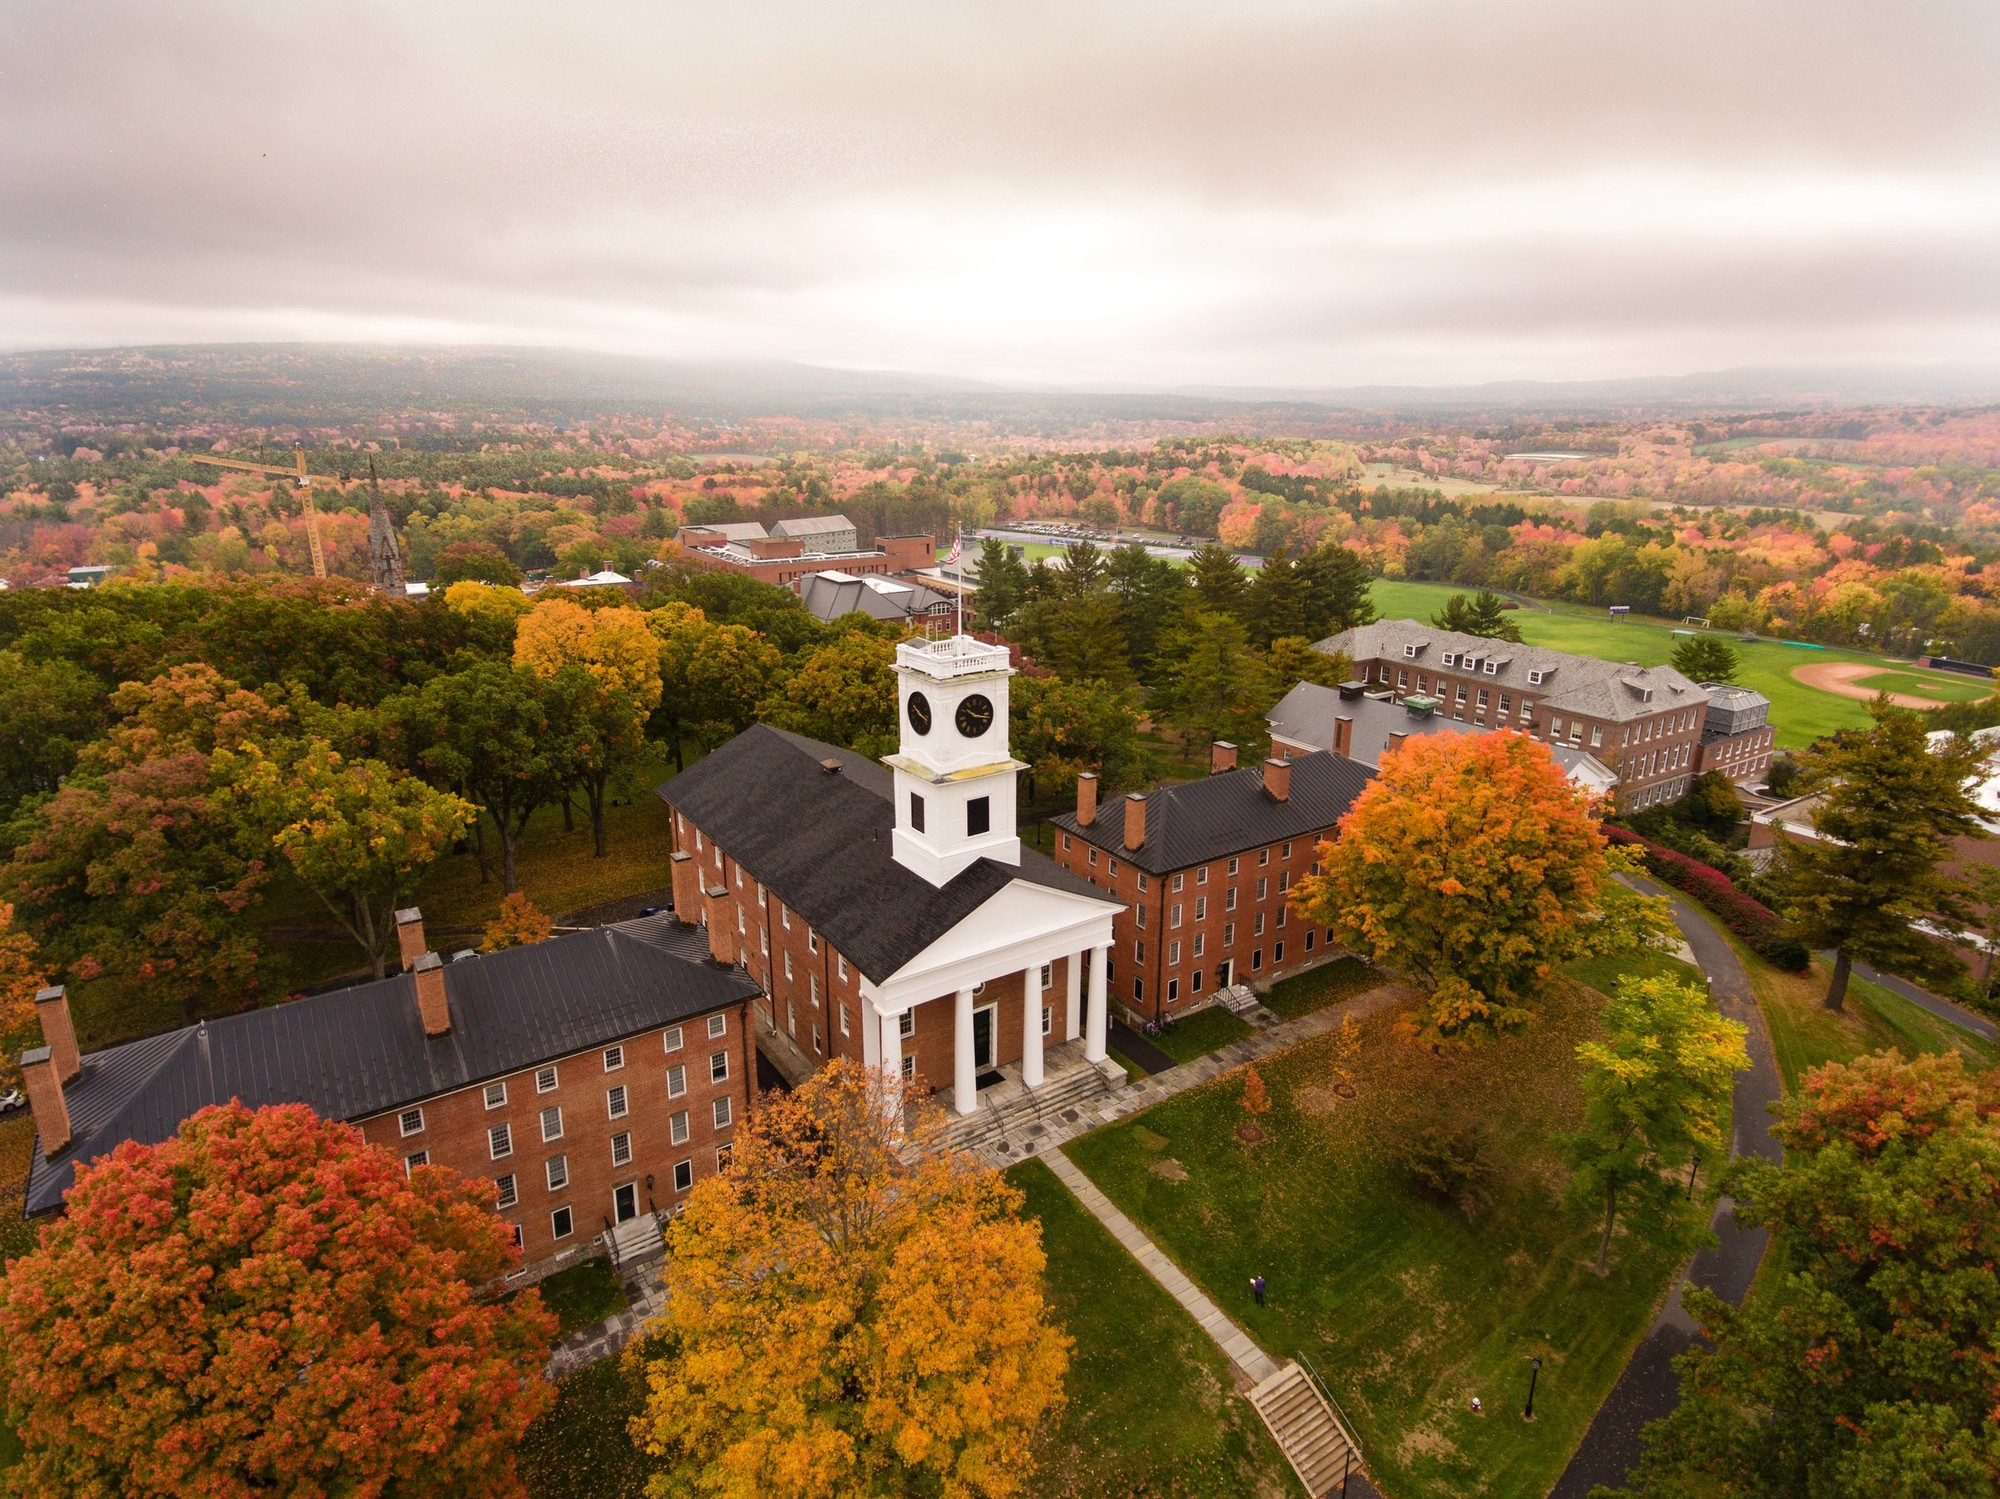 Aerial view of Amherst College campus